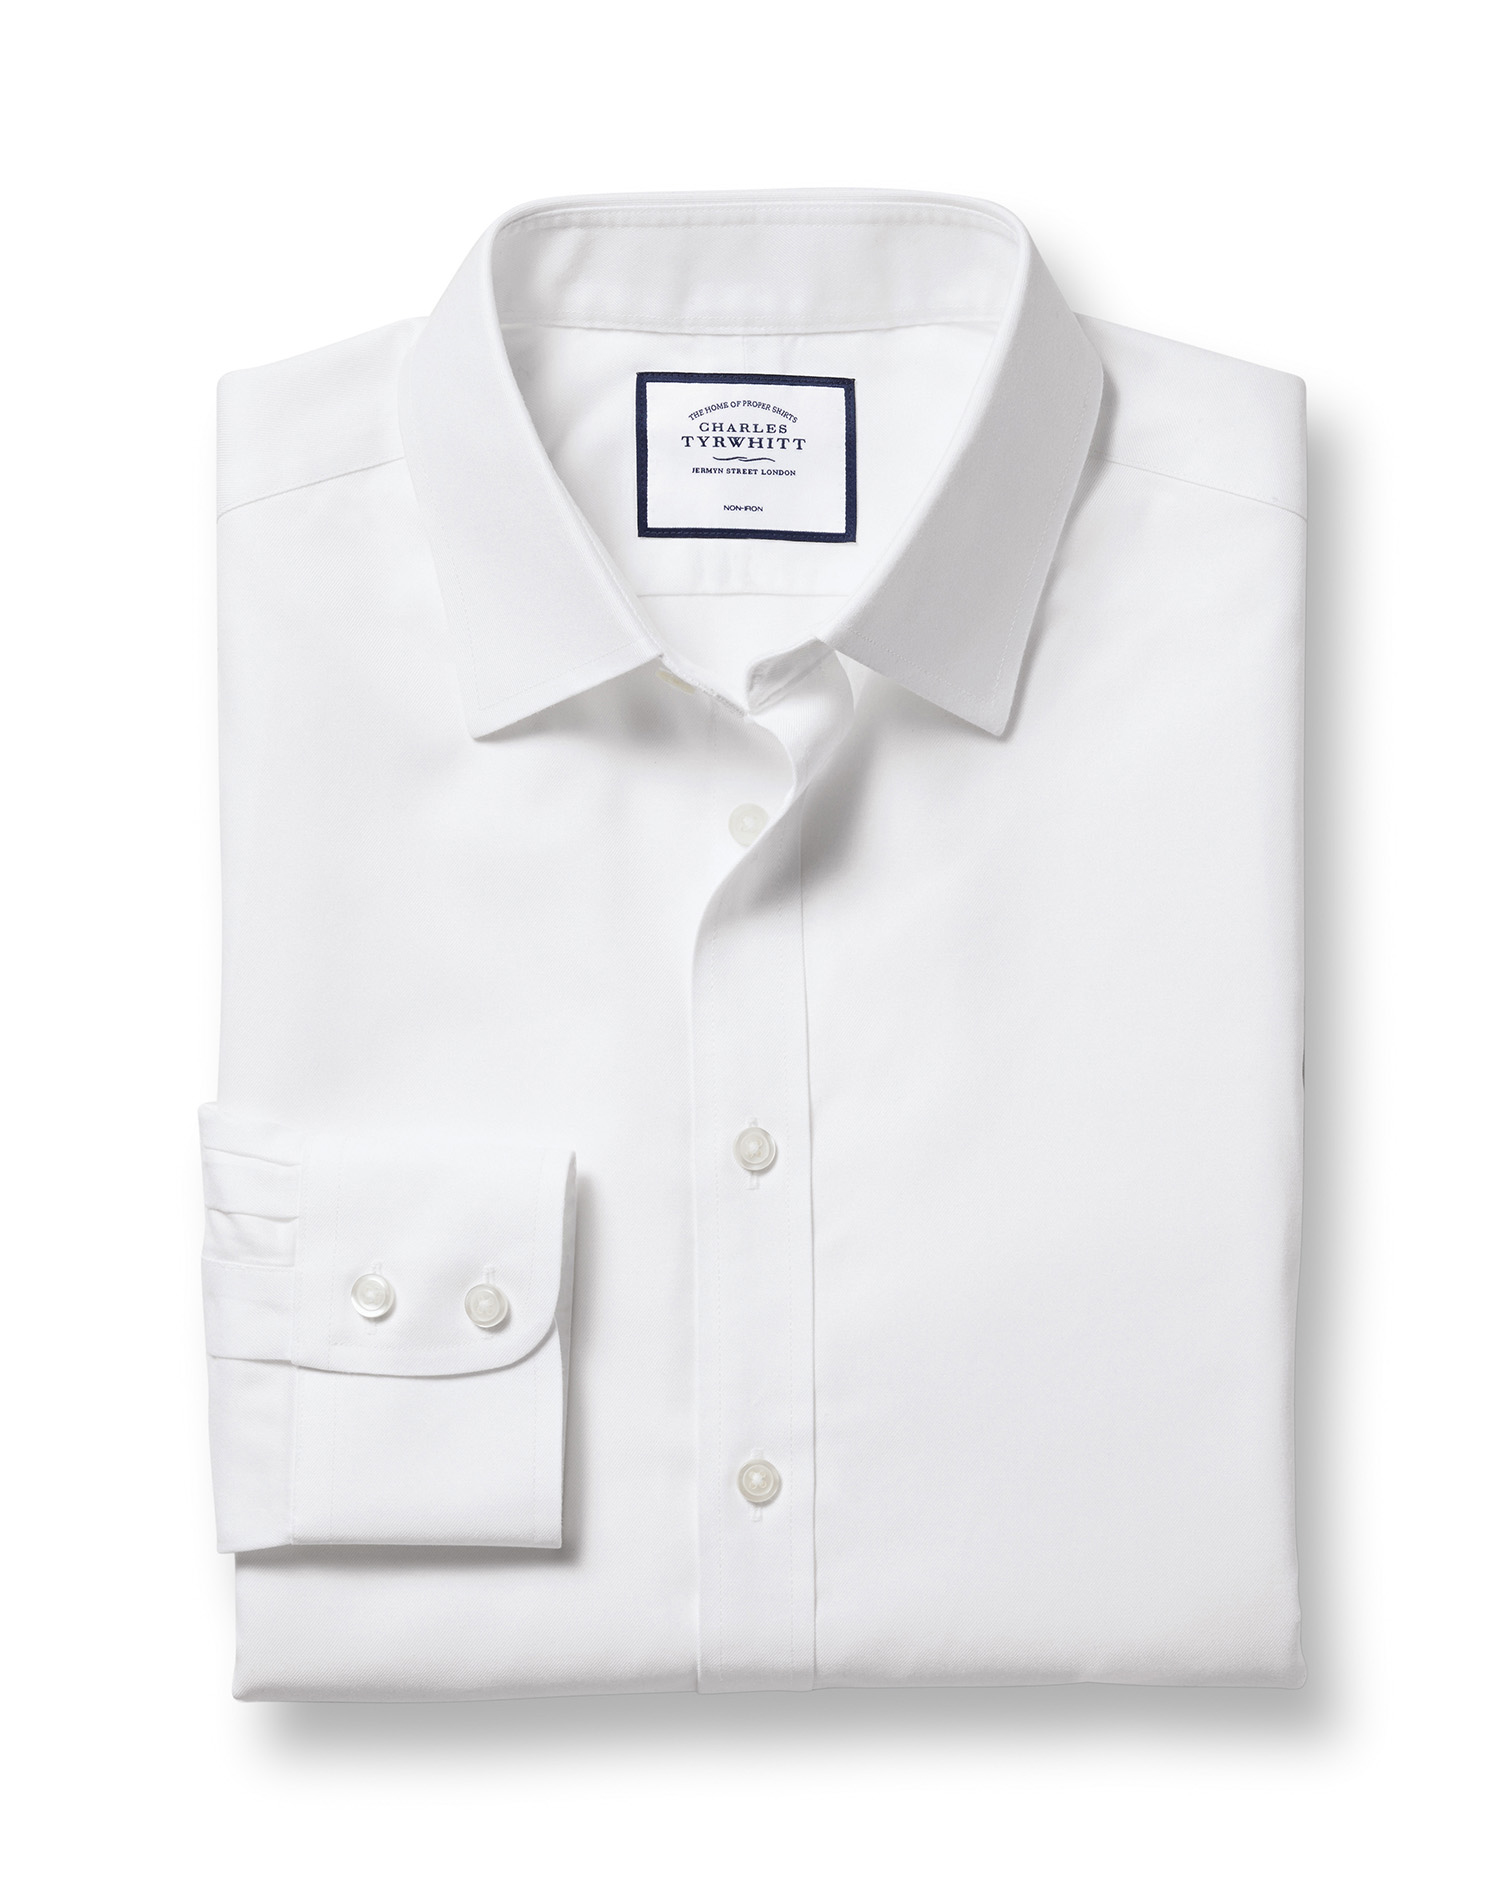 Slim Fit Non-Iron Twill White Cotton Formal Shirt Single Cuff Size 17/36 by Charles Tyrwhitt